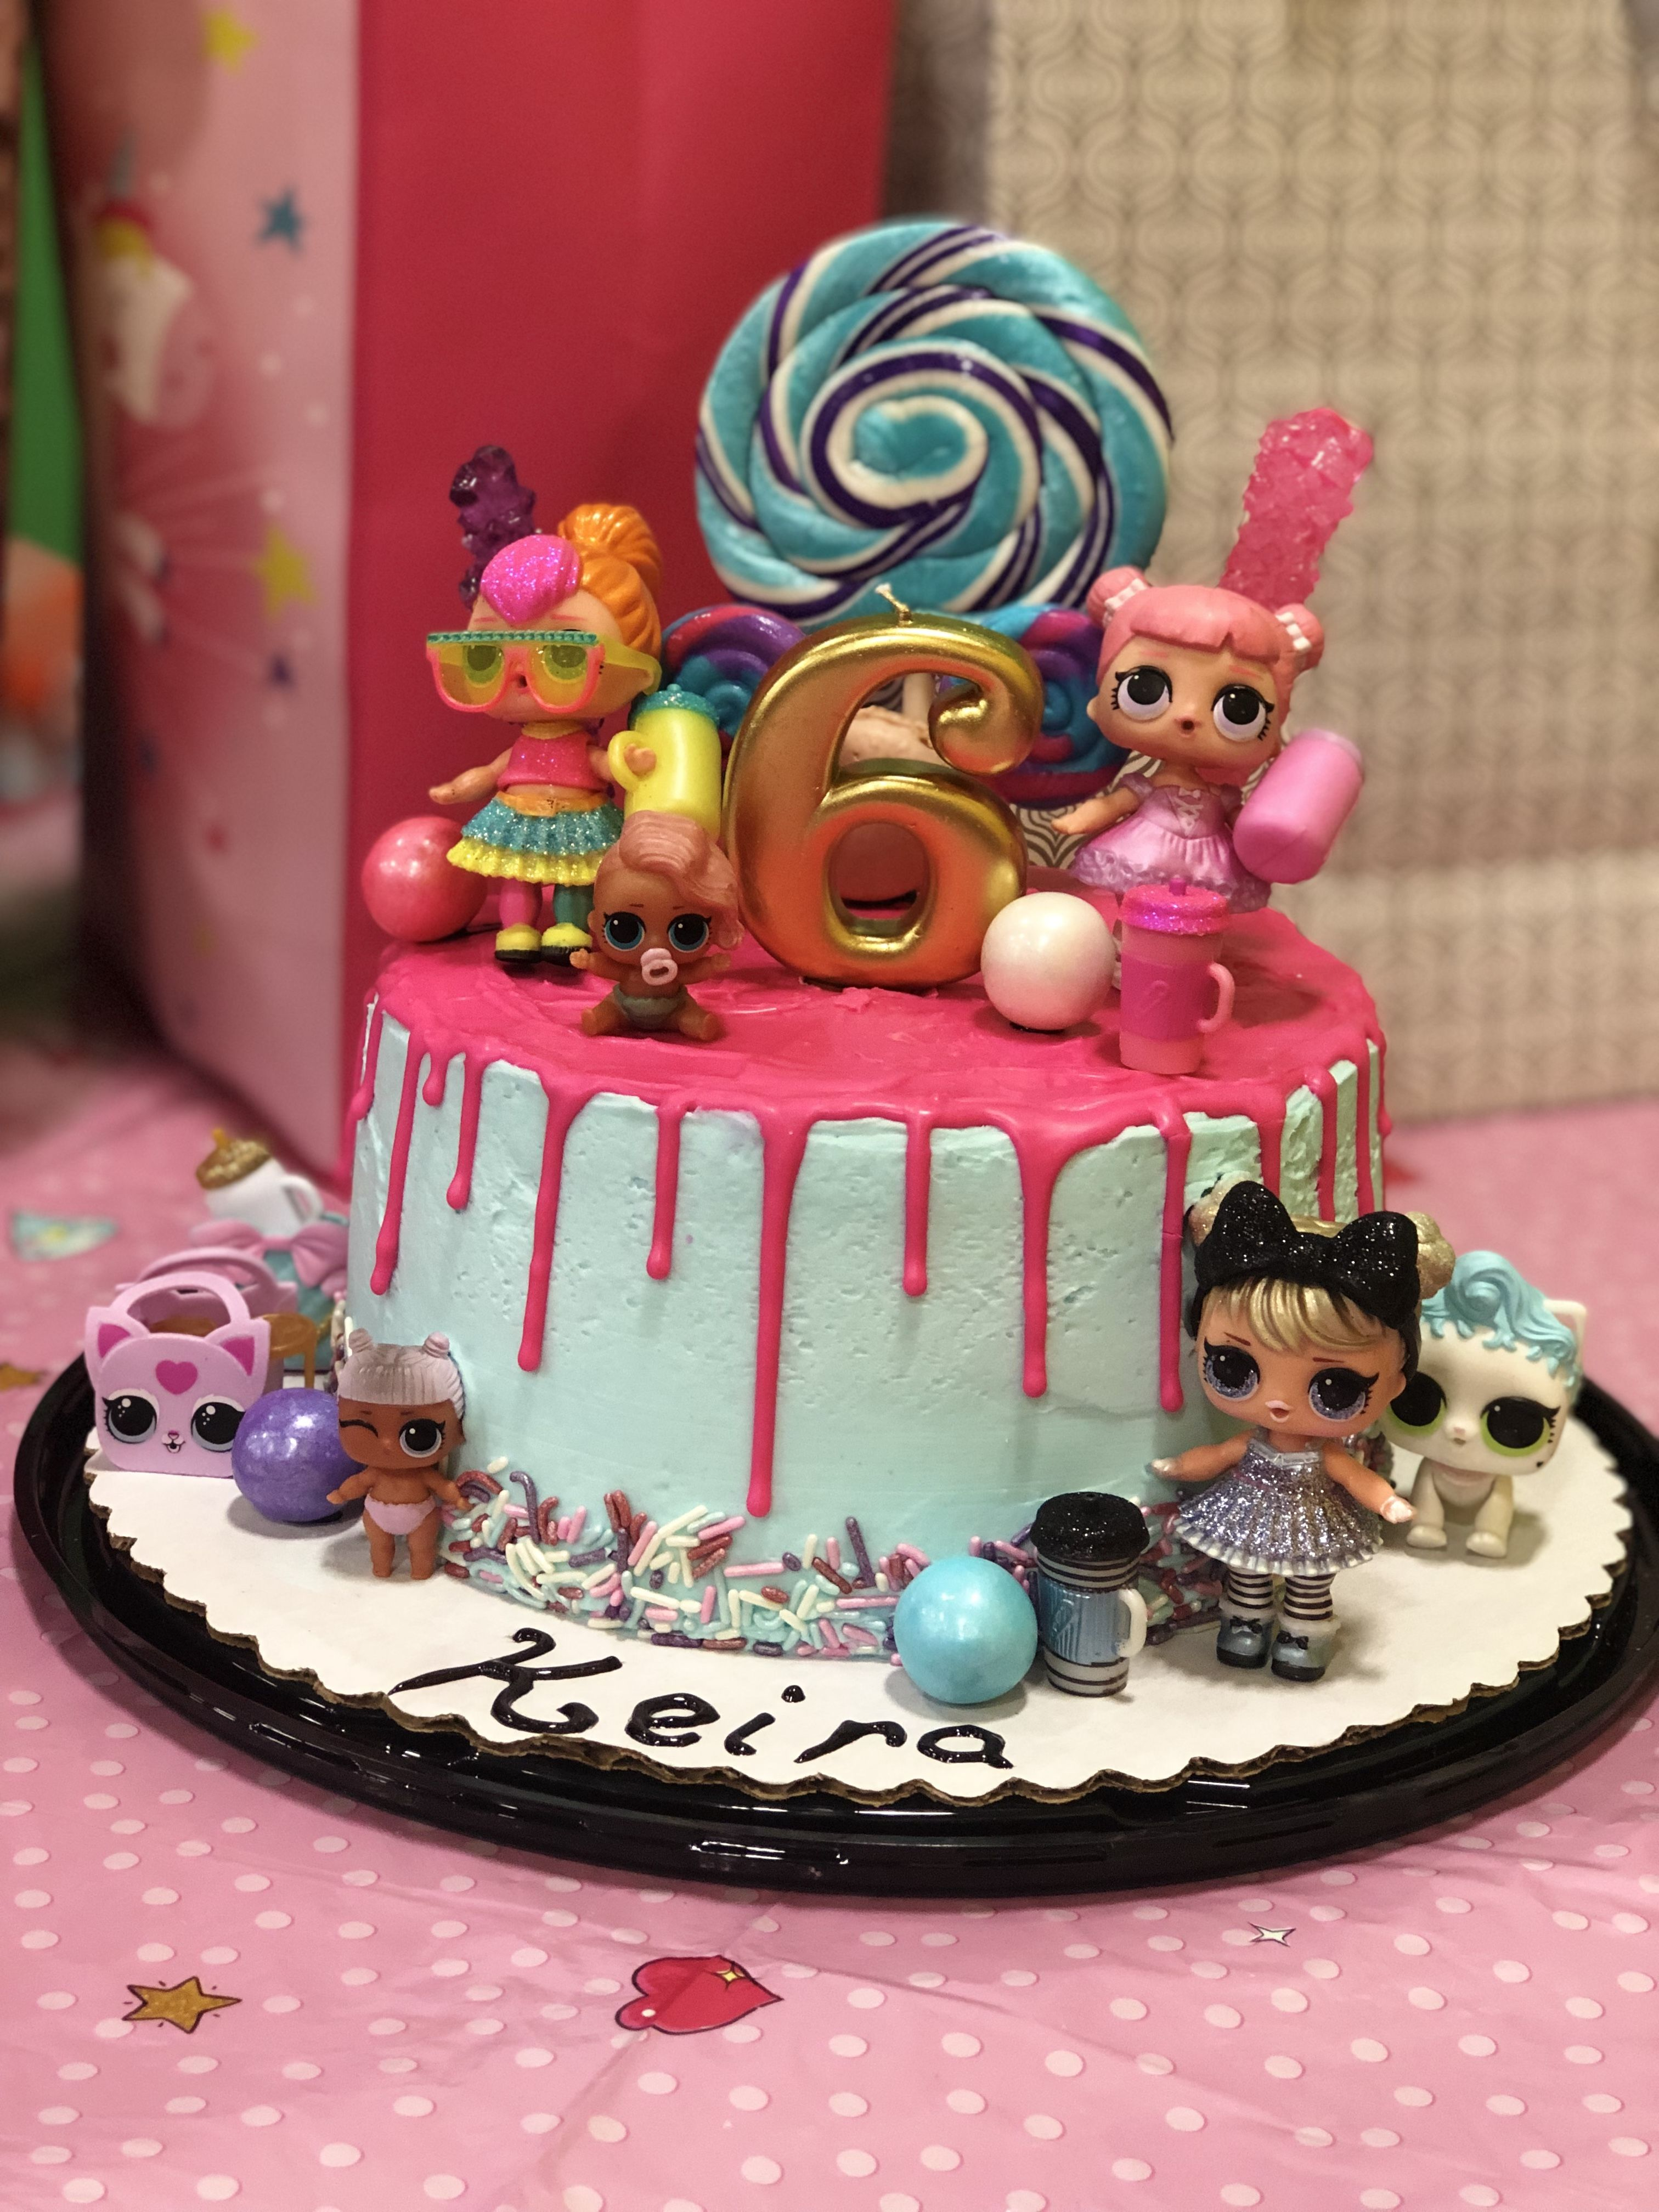 Homemade Cake Featuring L O L Surprise Dolls With A Drip Ganache With Images Funny Birthday Cakes Surprise Birthday Cake Birthday Surprise